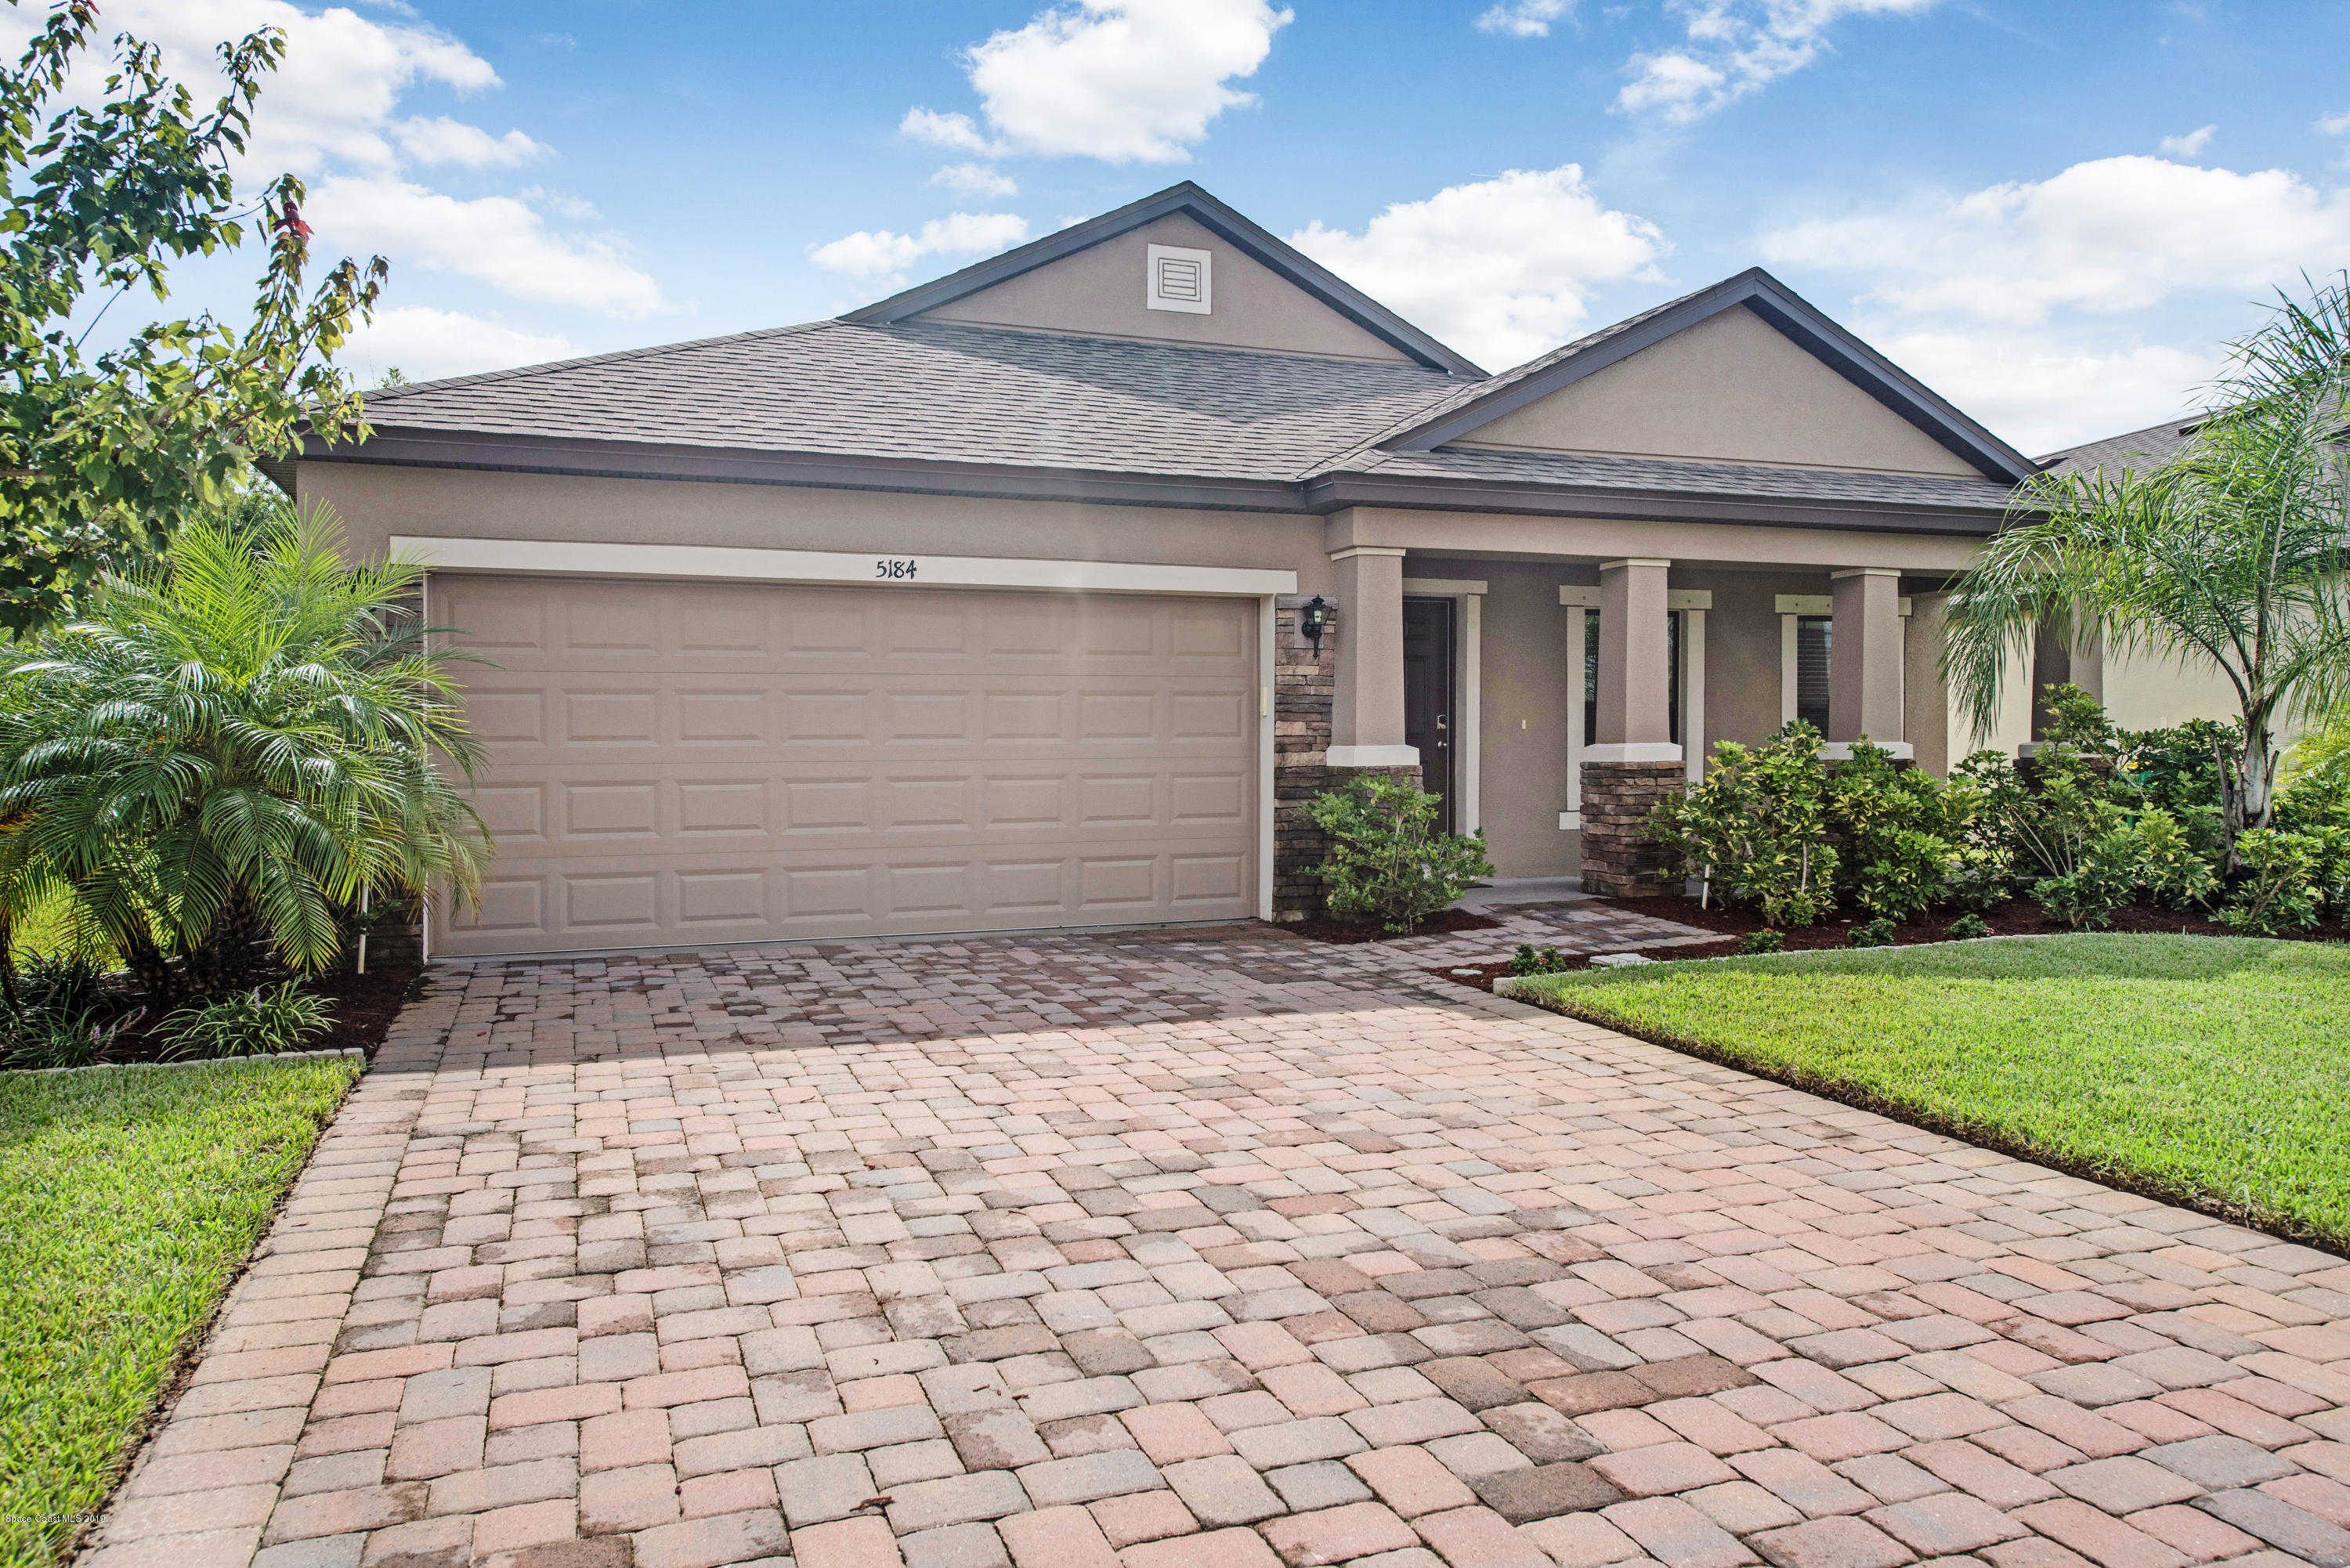 5184 Brilliance Circle, Cocoa, FL 32926 is now new to the market!